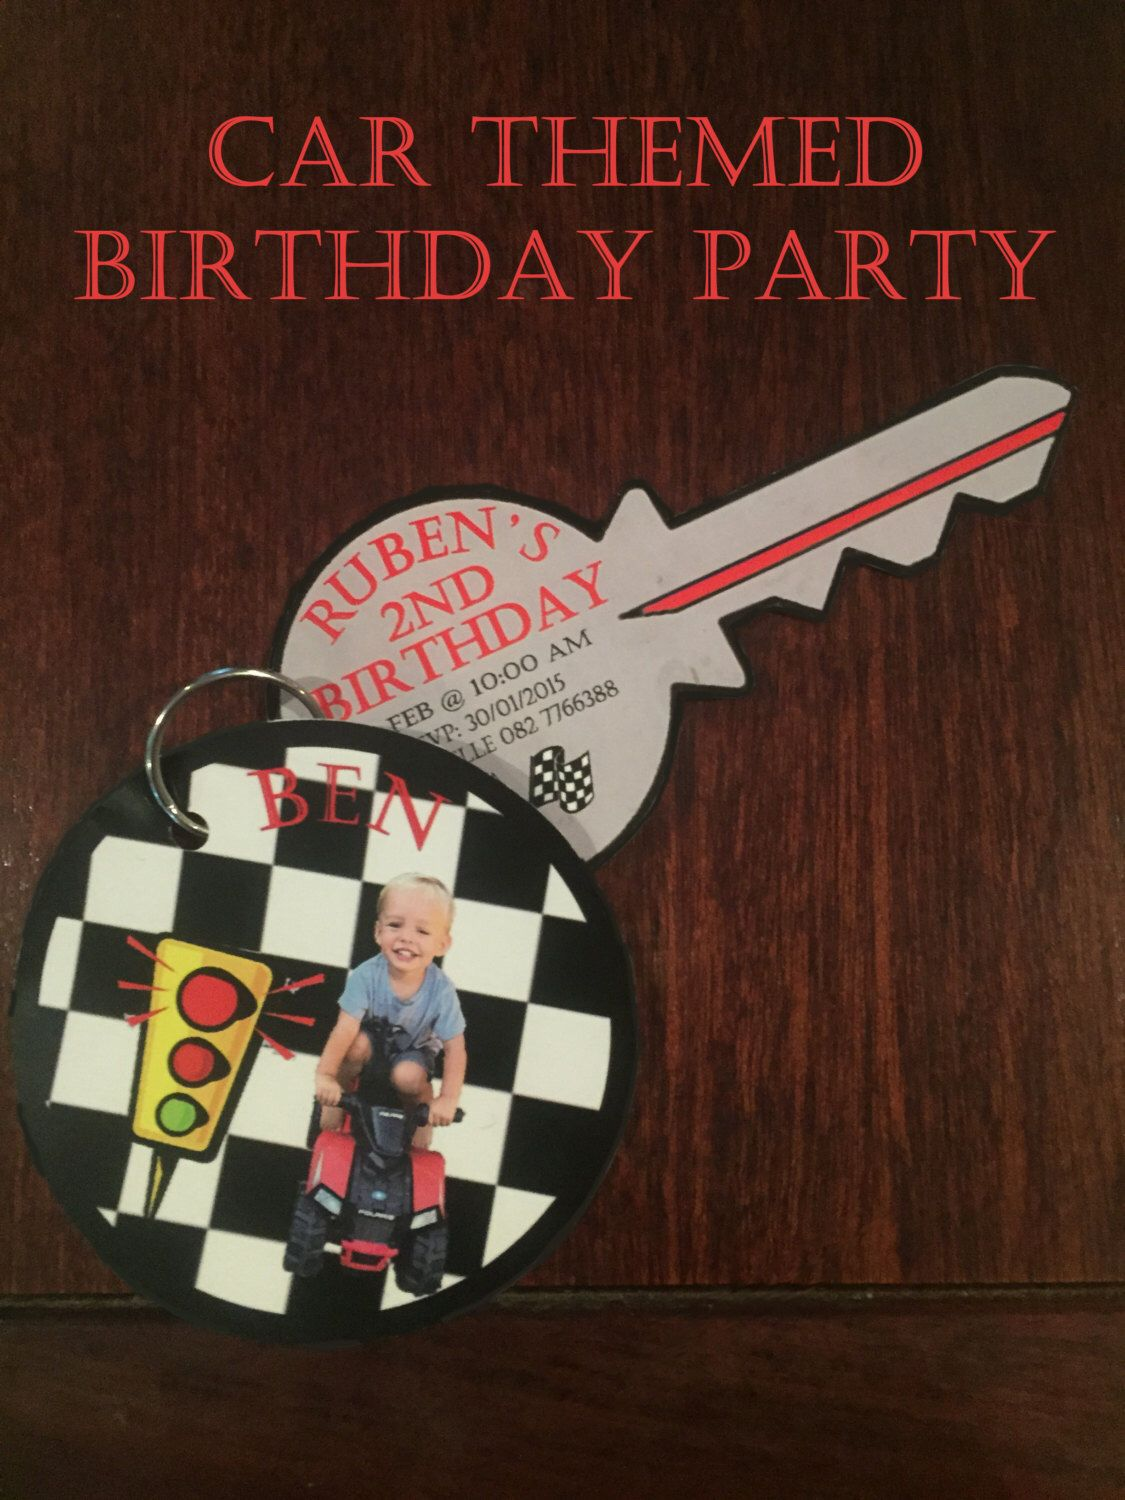 Car themed birthday party invitation | Etsy